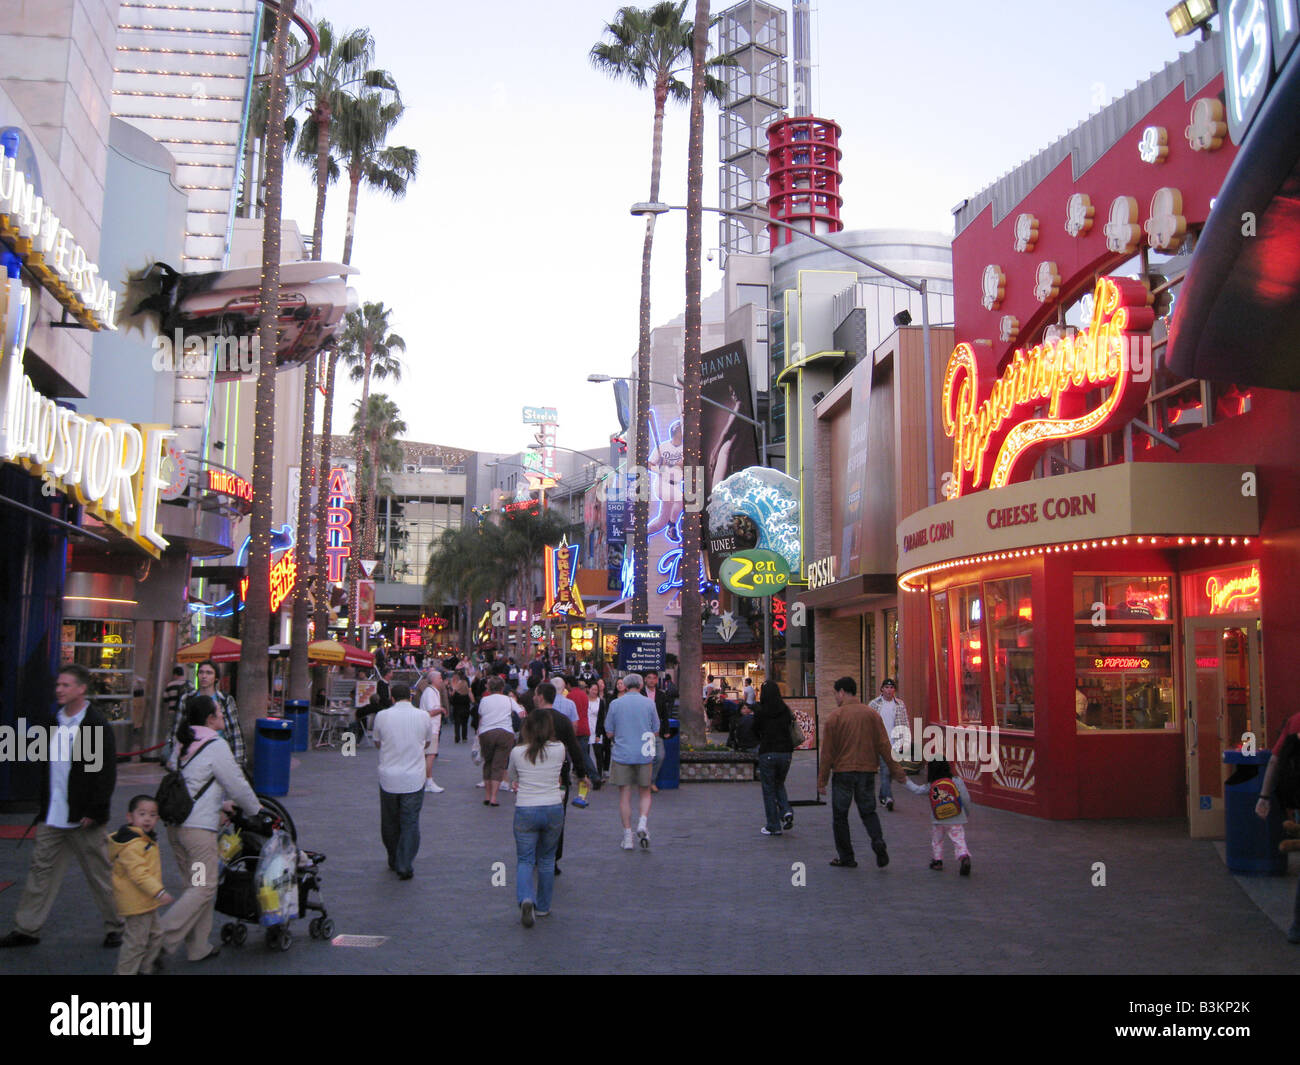 UNIVERSAL STUDIOS, Hollywood. Shops near the entrance to the Studios - Stock Image